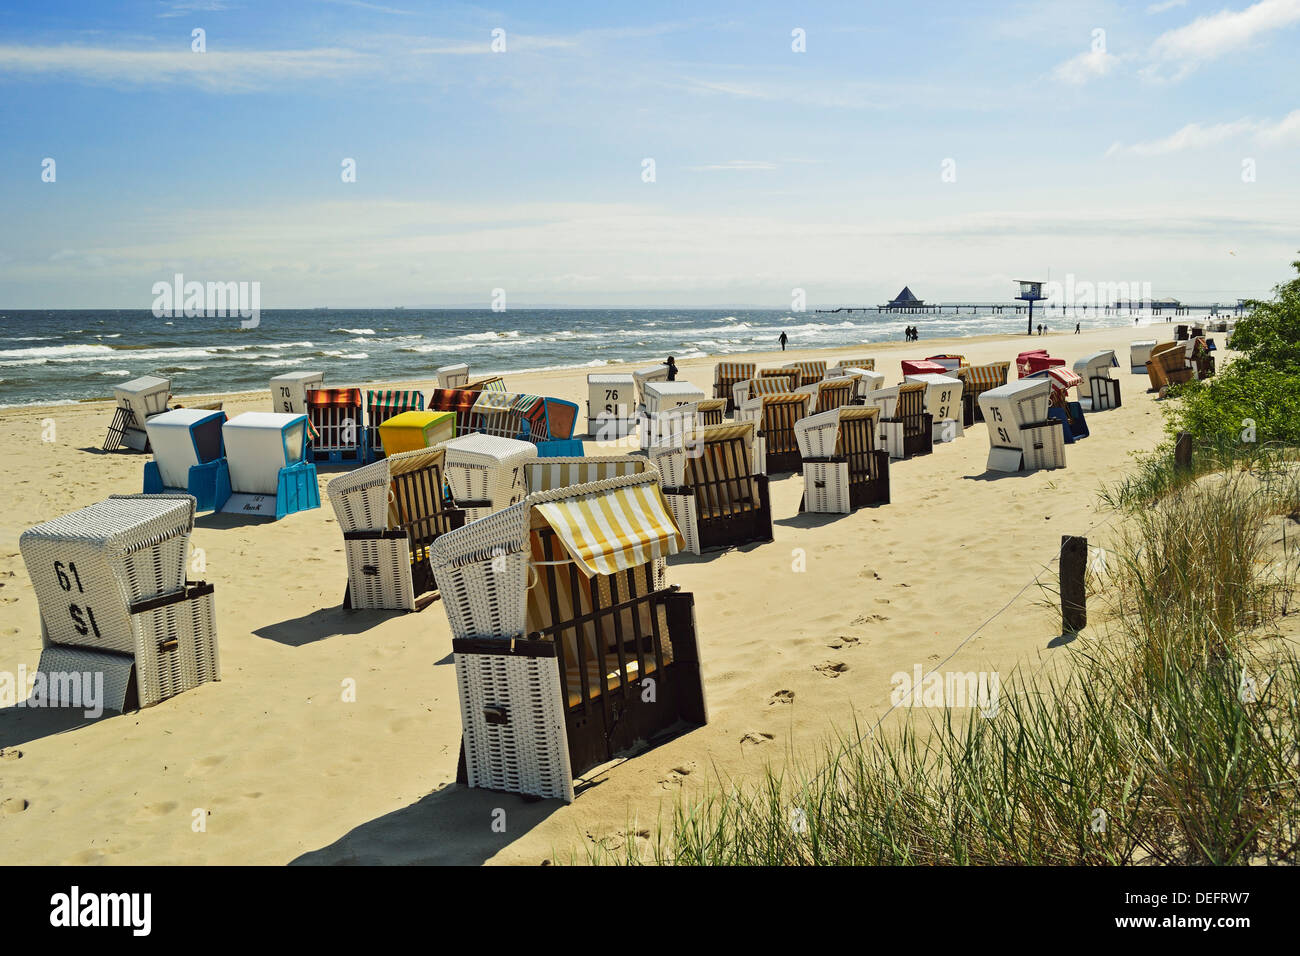 Beach chairs, Usedom, Mecklenburg-Vorpommern, Germany, Baltic Sea, Europe - Stock Image